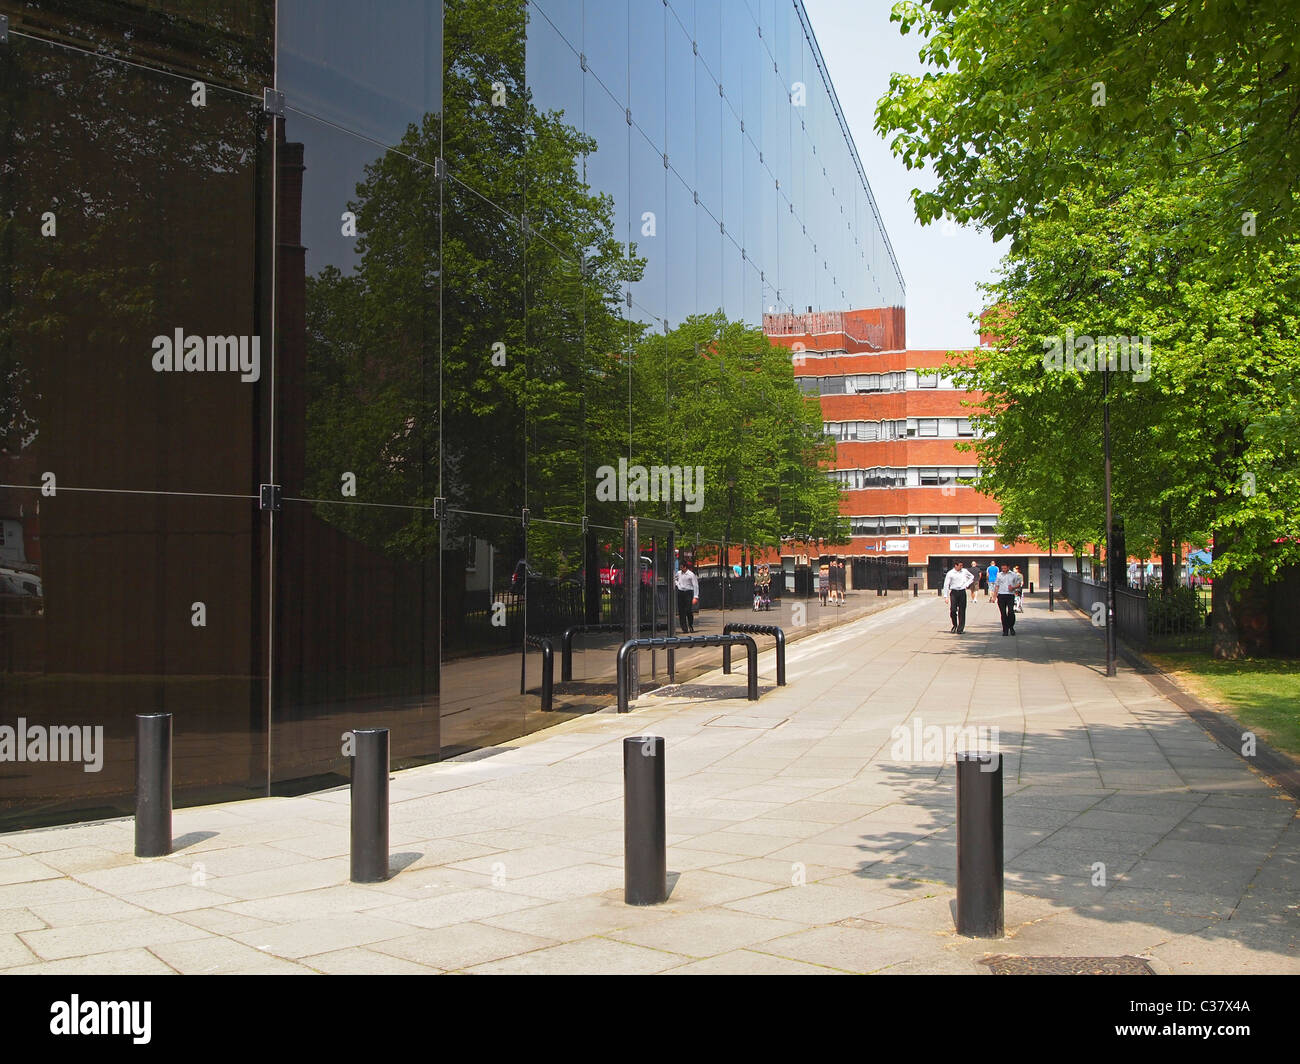 Willis Group Holdings Building, Ipswich, Suffolk - one of earliest designed by architect Norman Foster - Stock Image